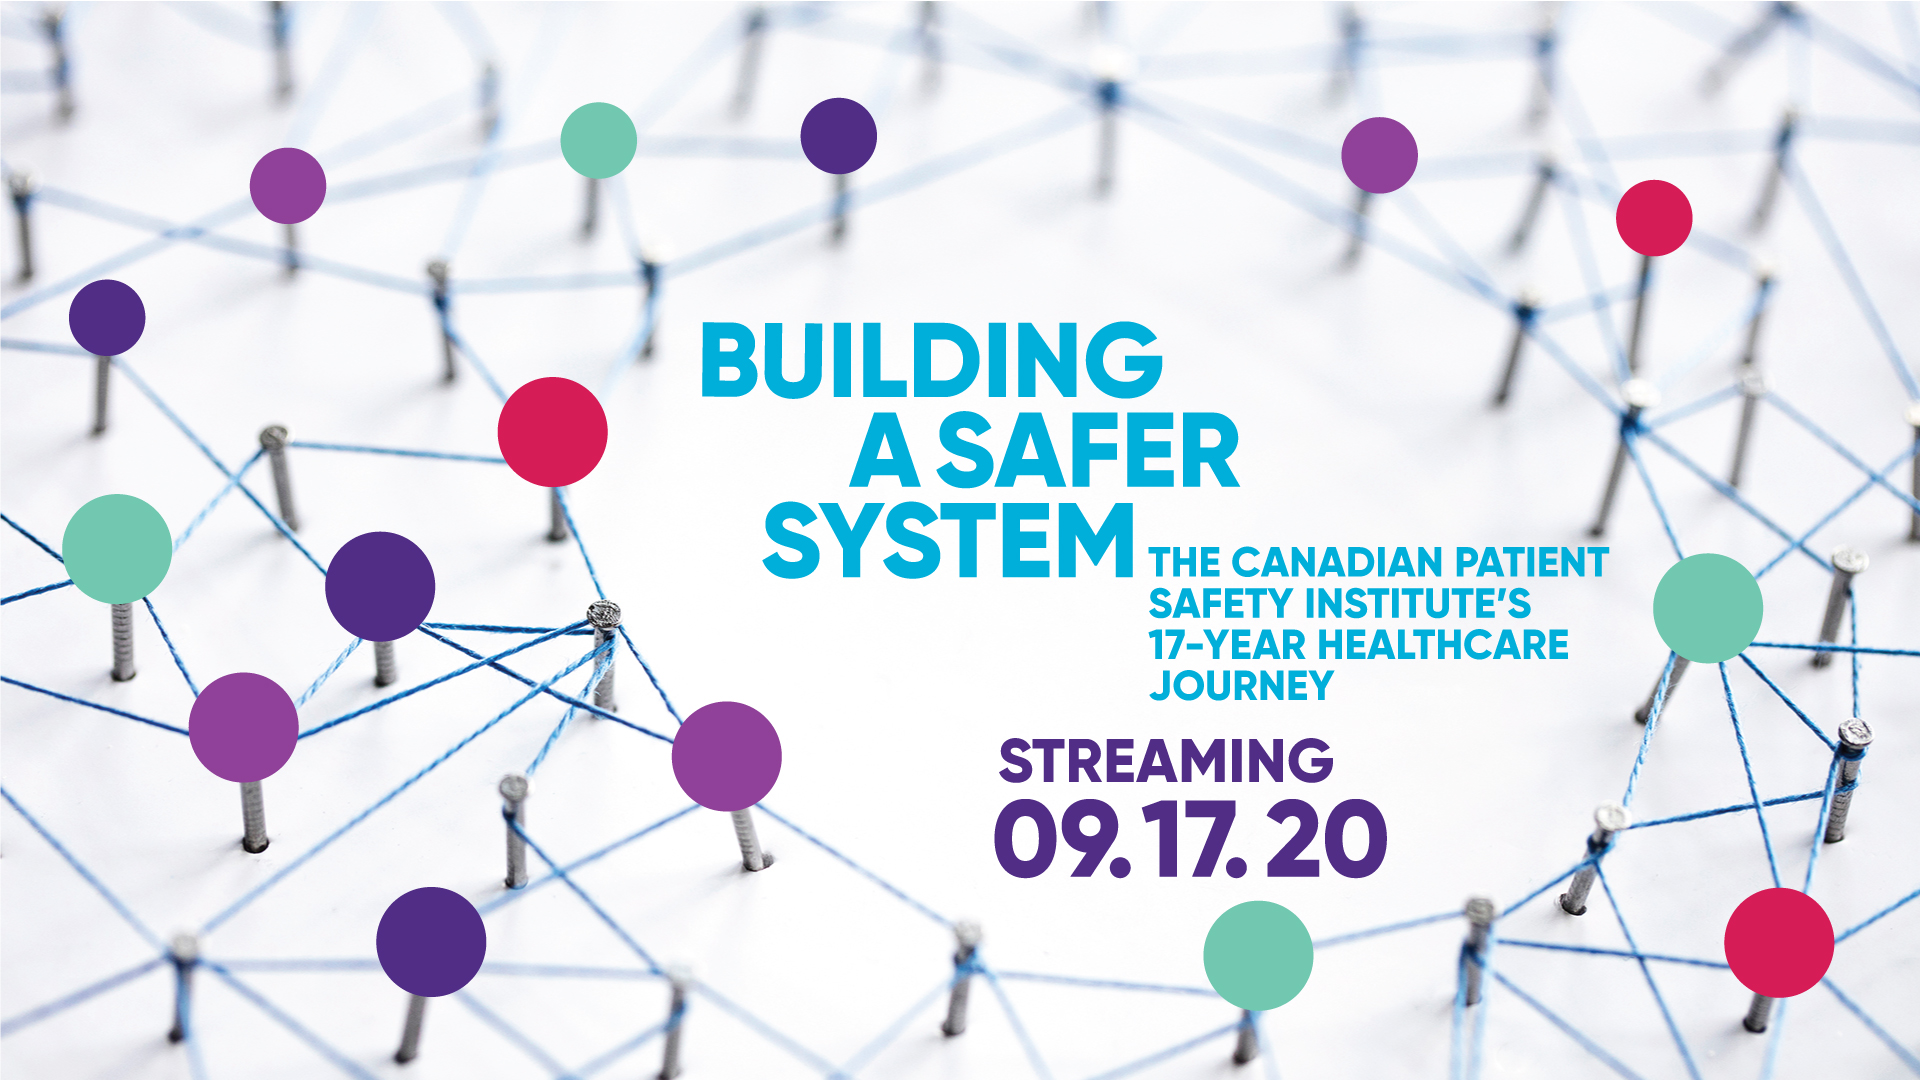 Building a safer system. Streaming 09.17.20